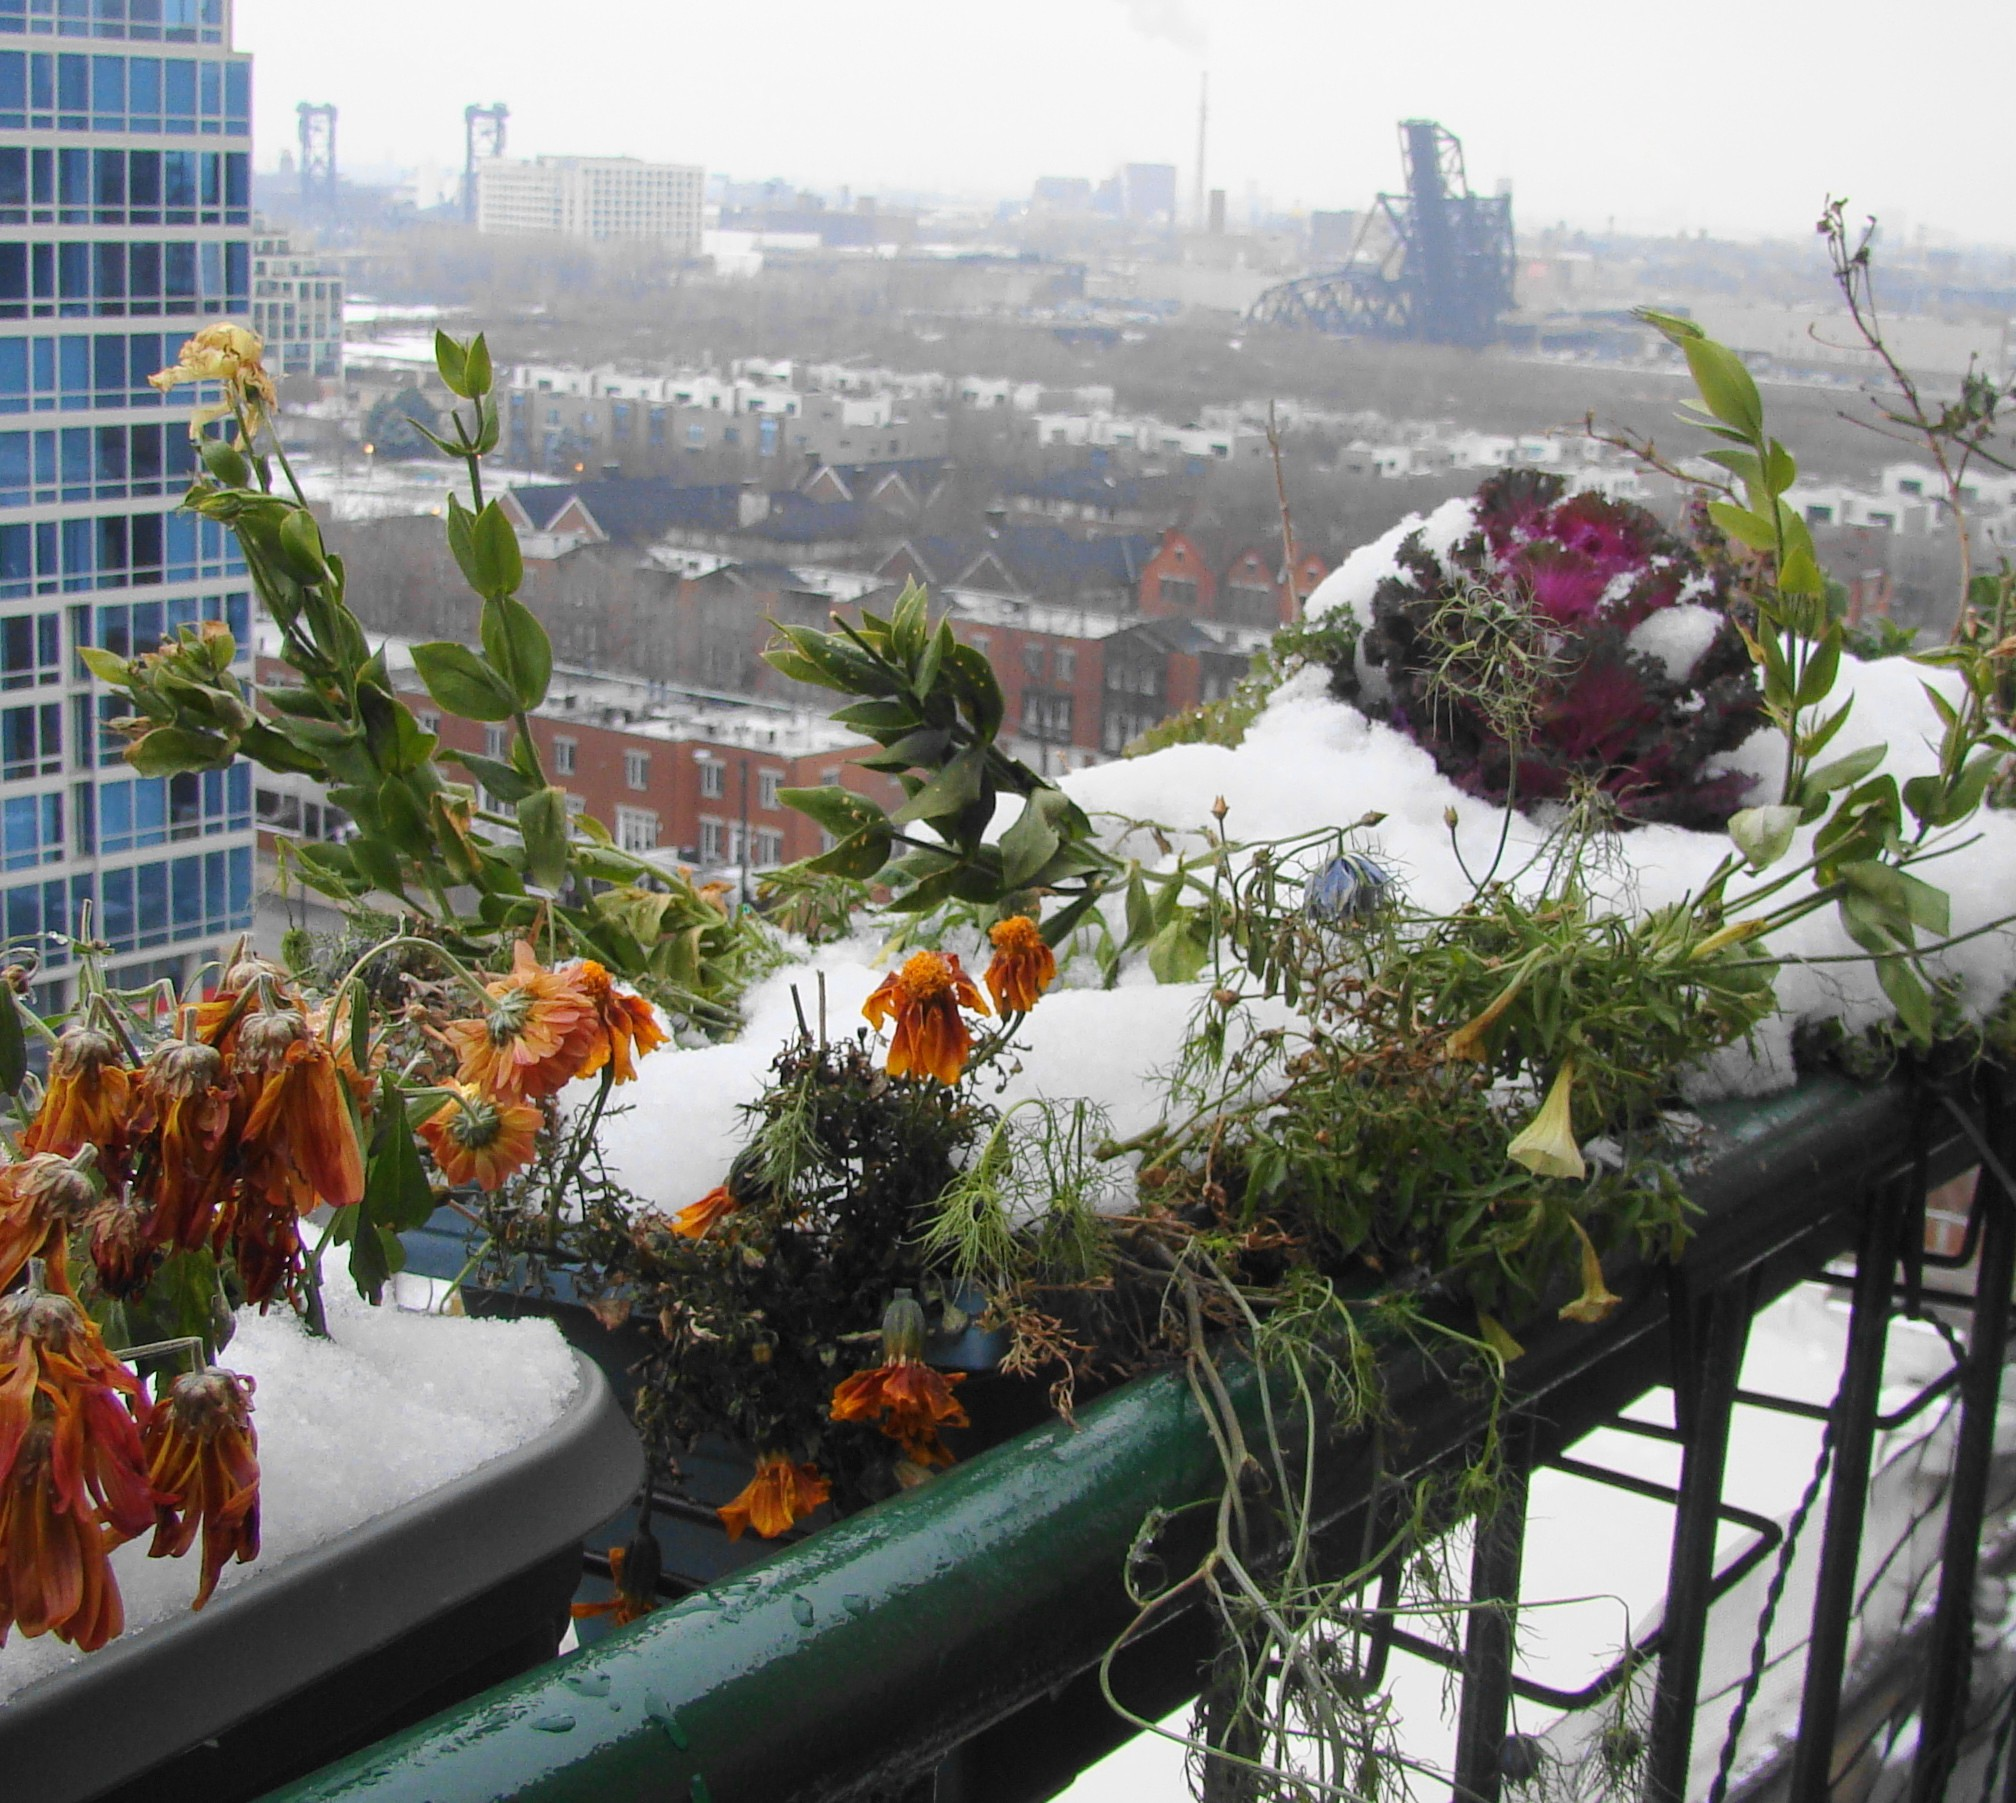 For urban balcony gardener there's no denying the coming